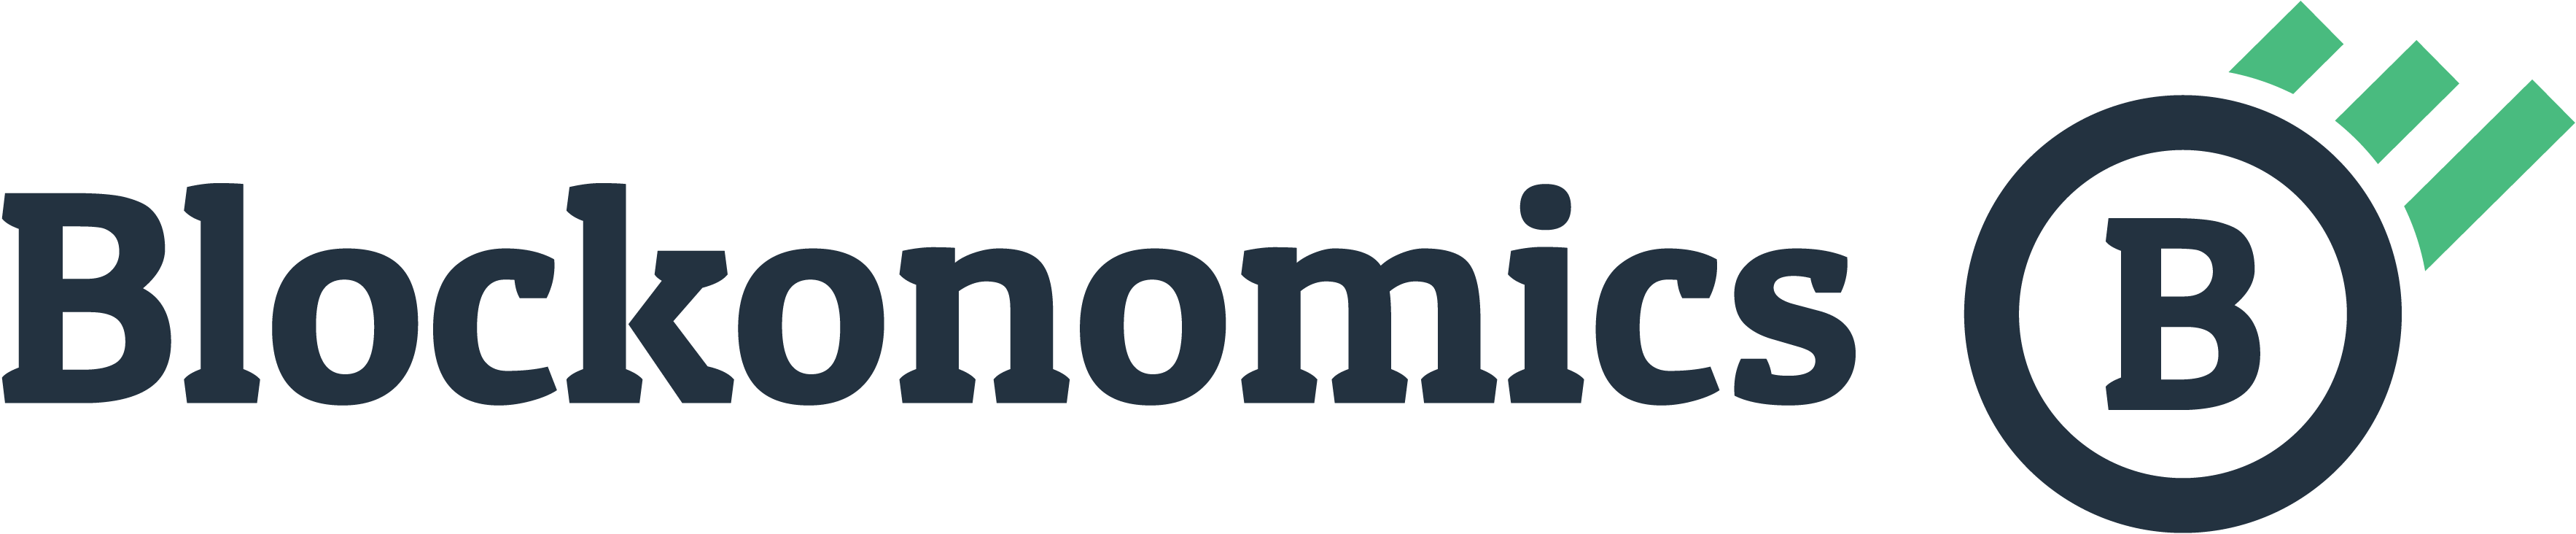 File:Blockonomics logo.png